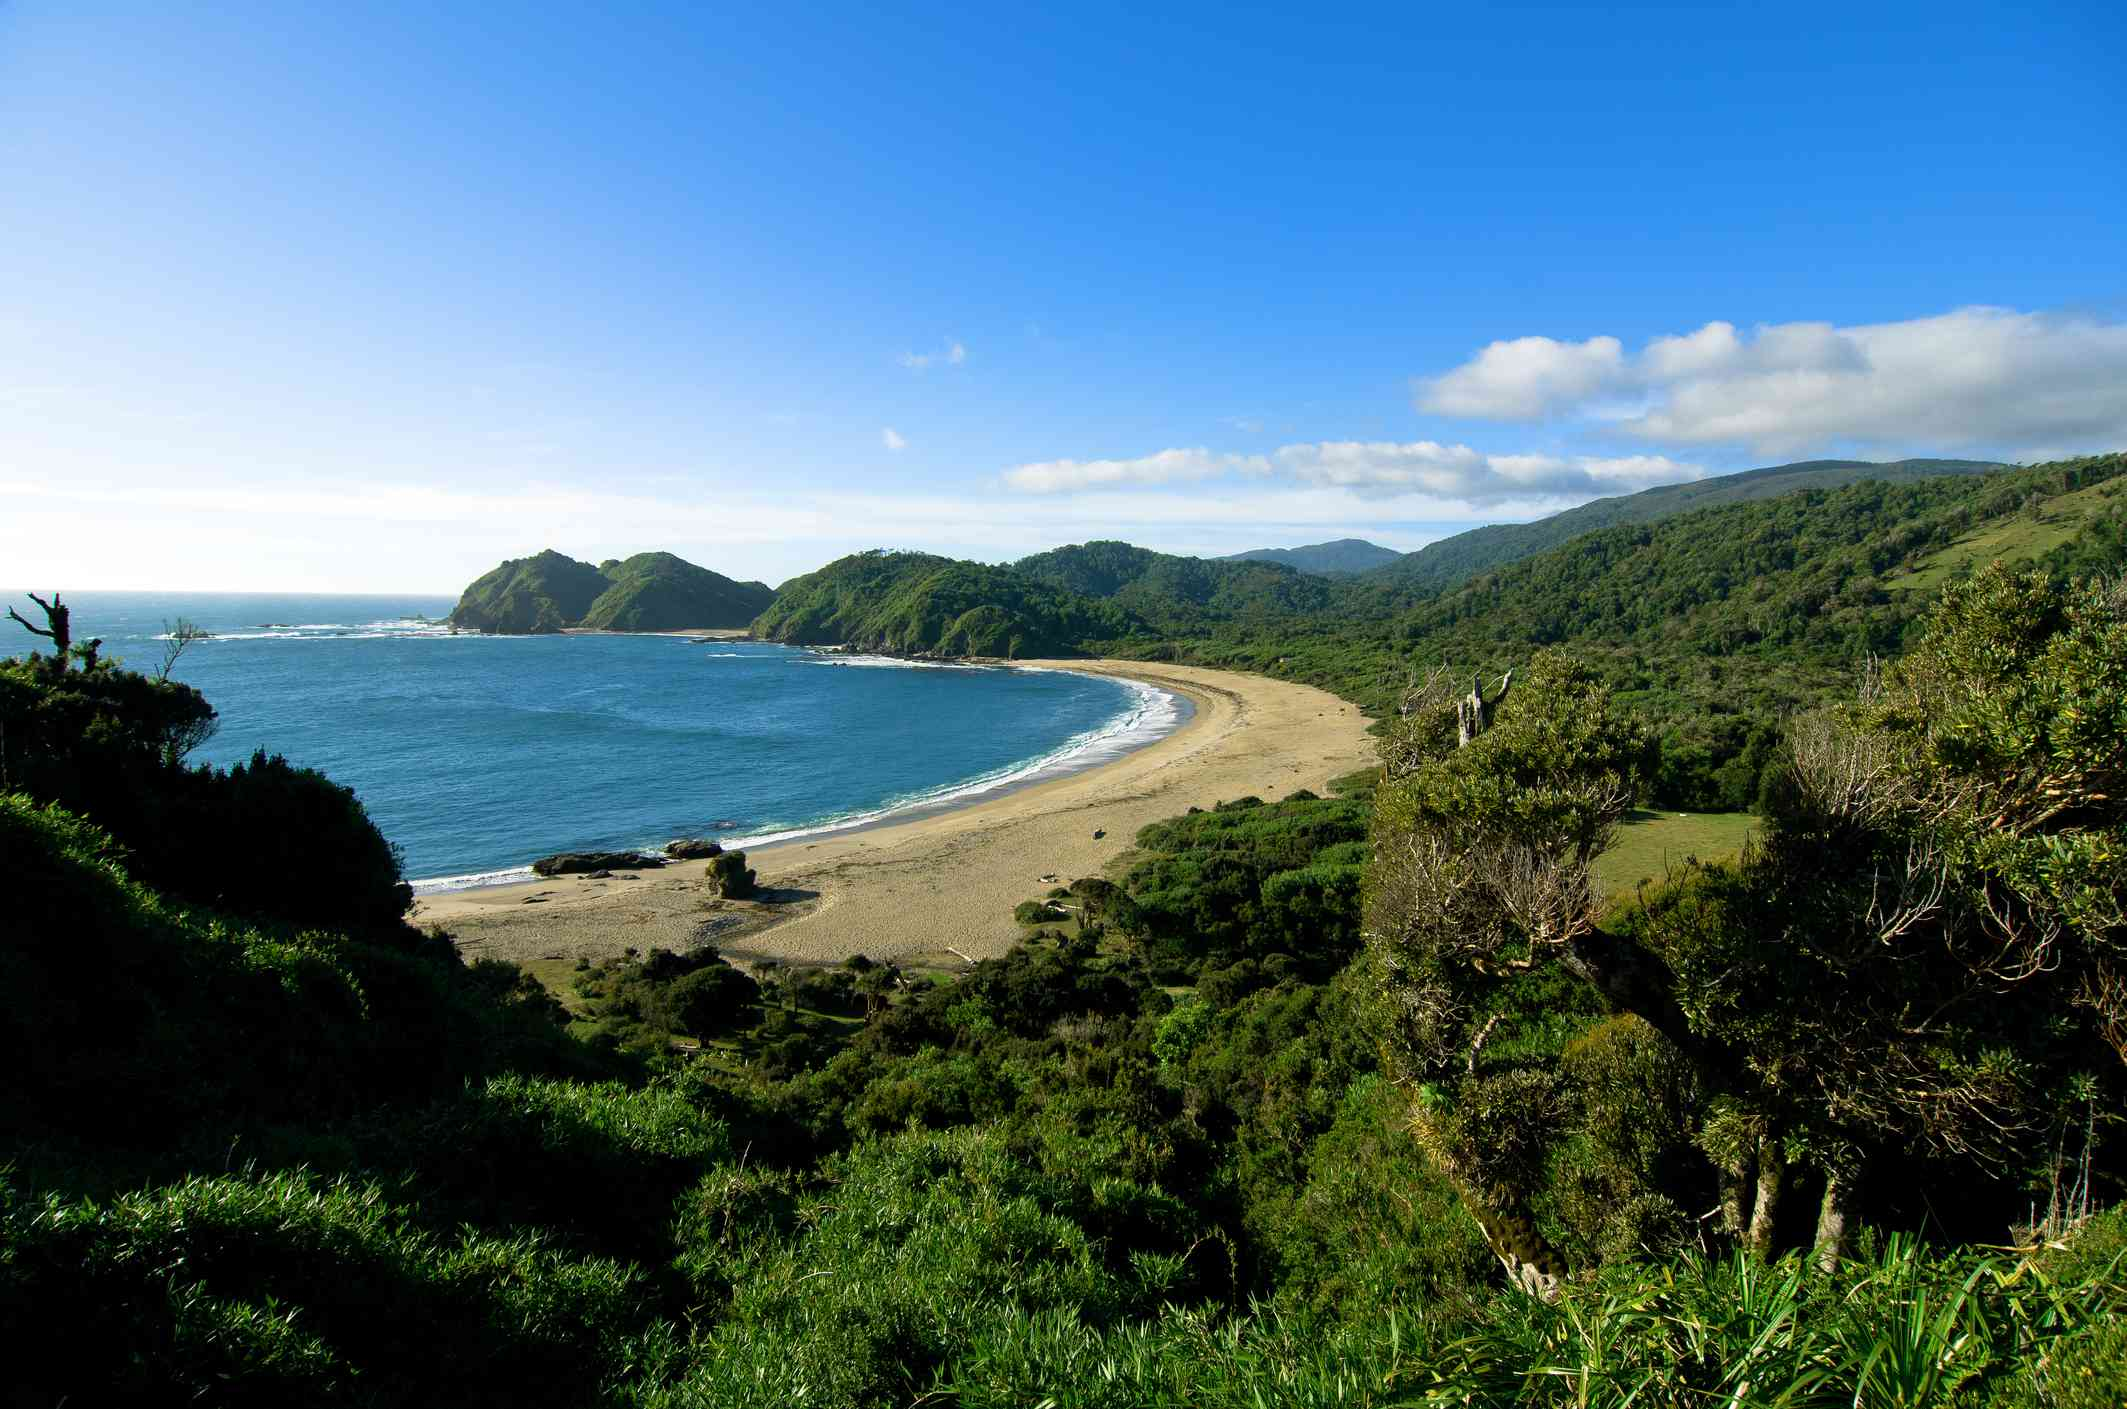 beach surrounded by forest